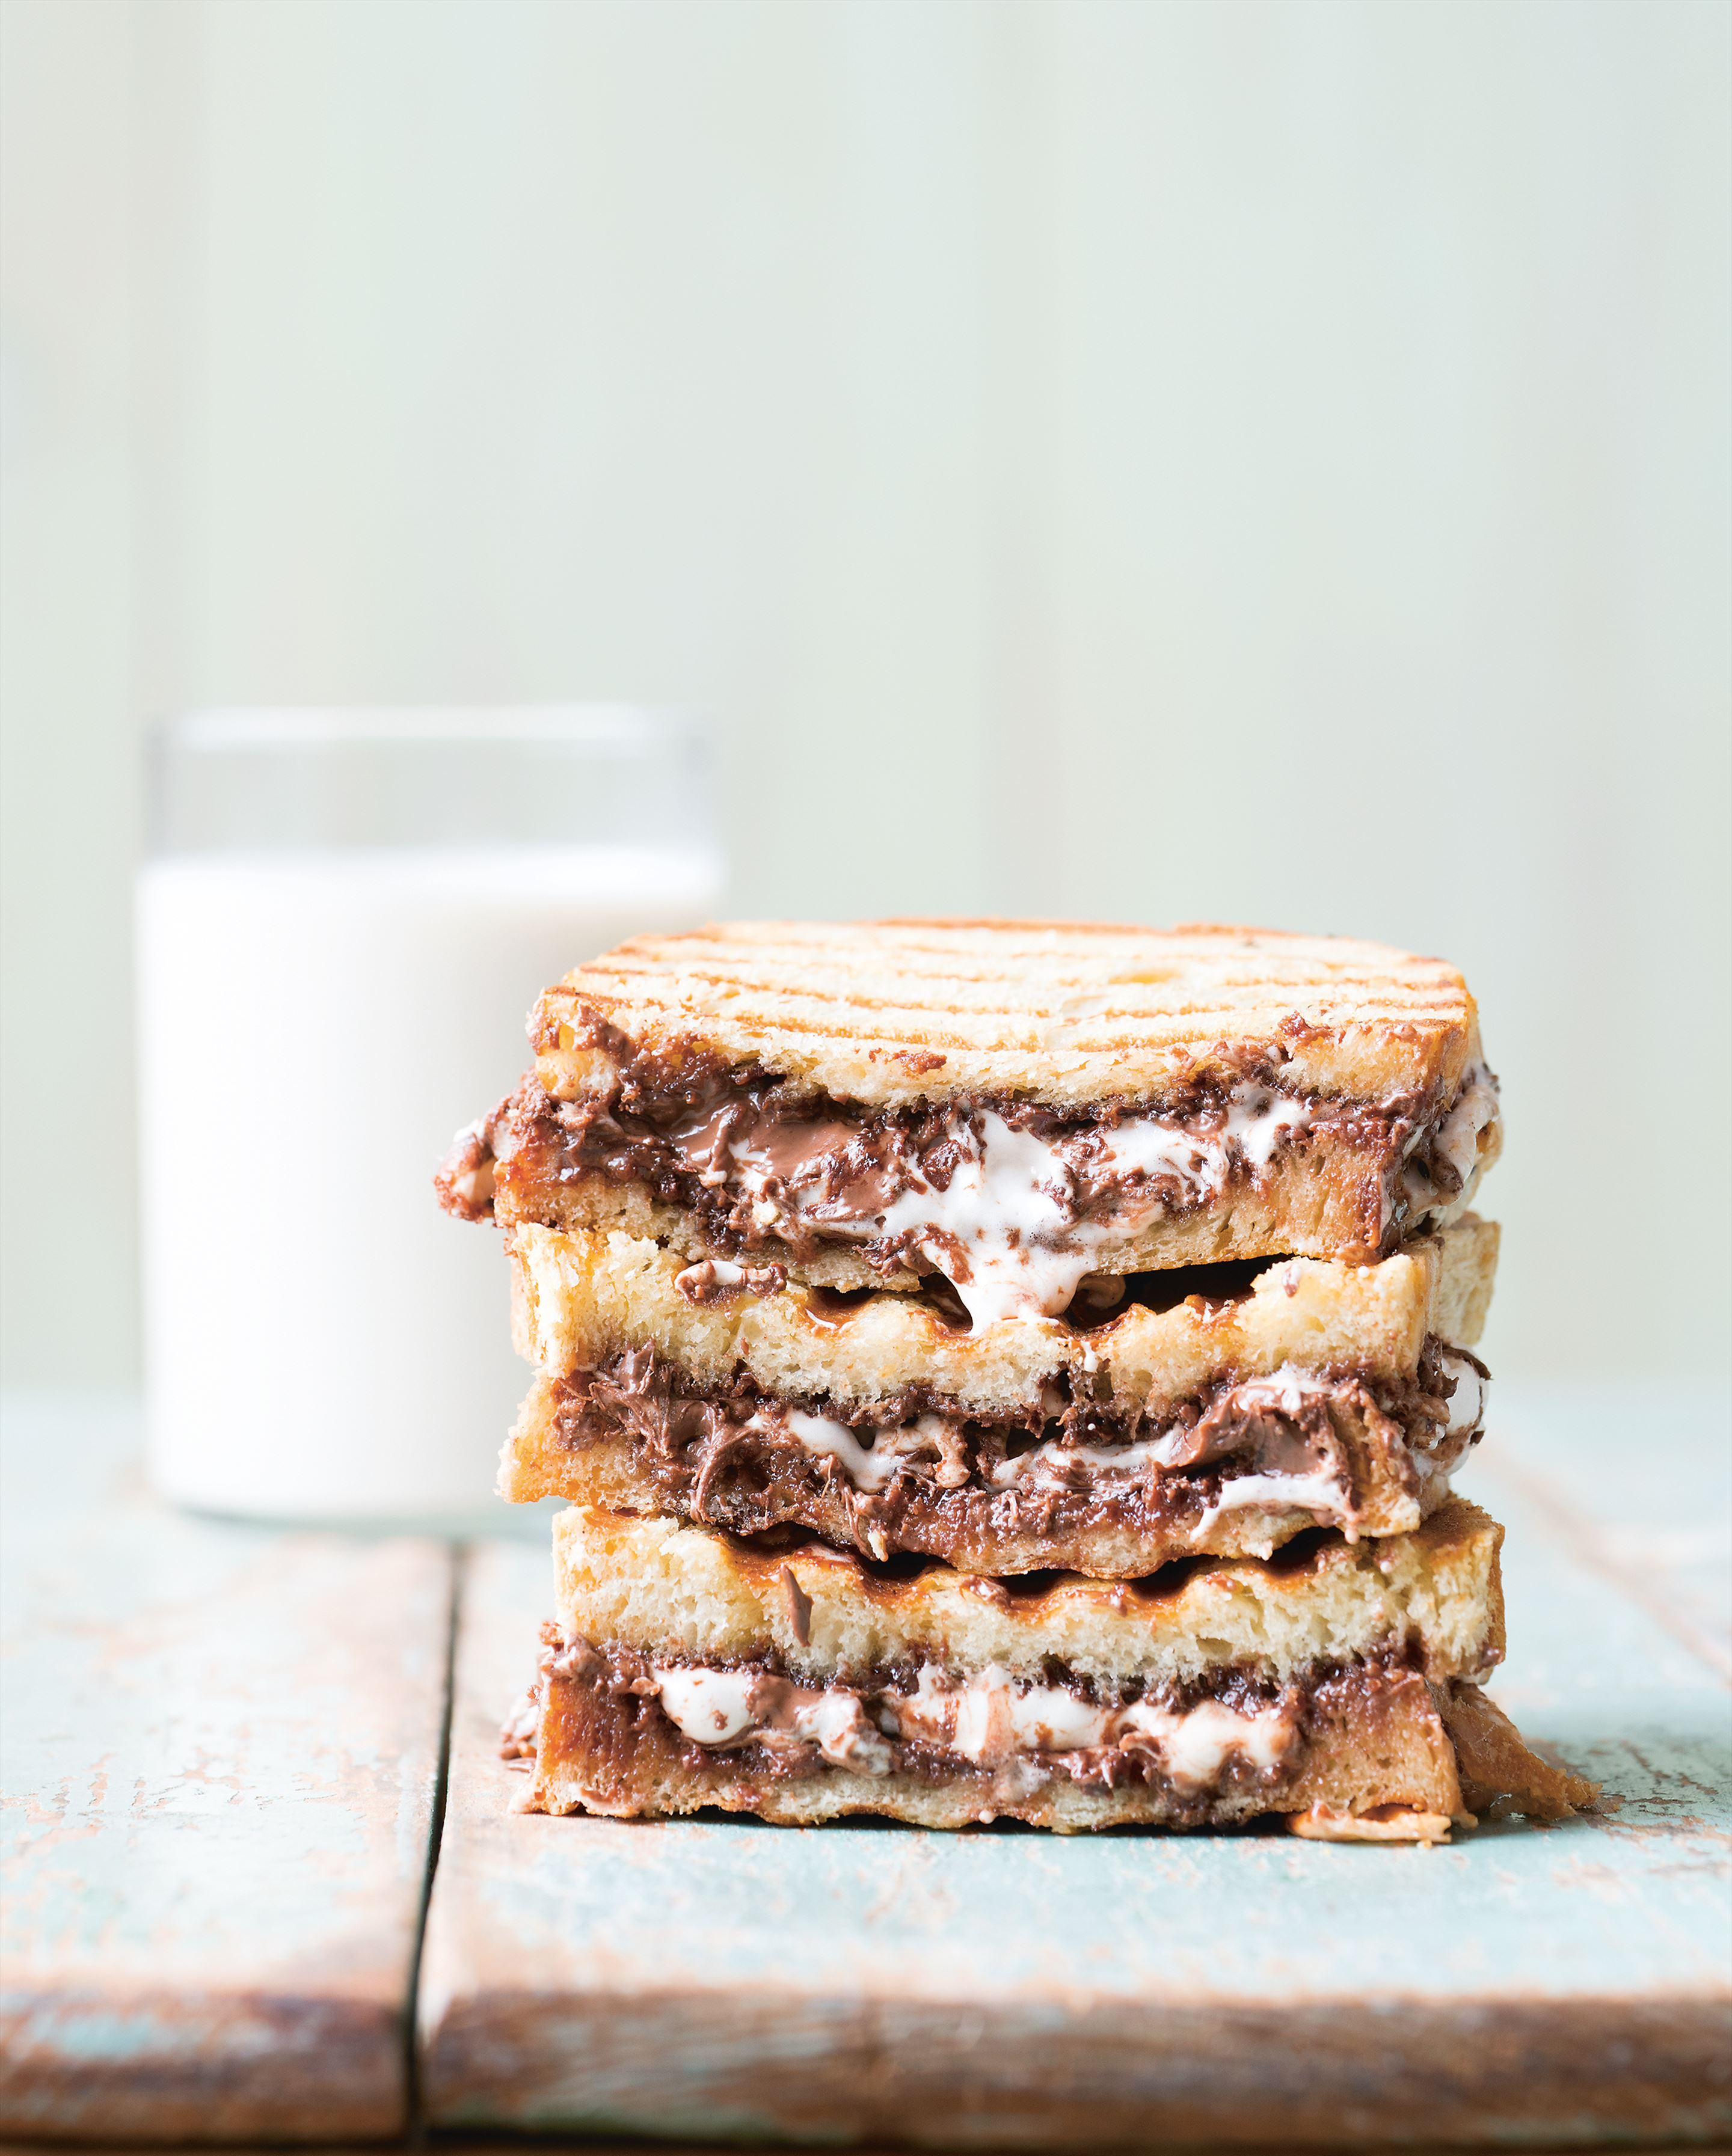 Malty nutella & marshmallow